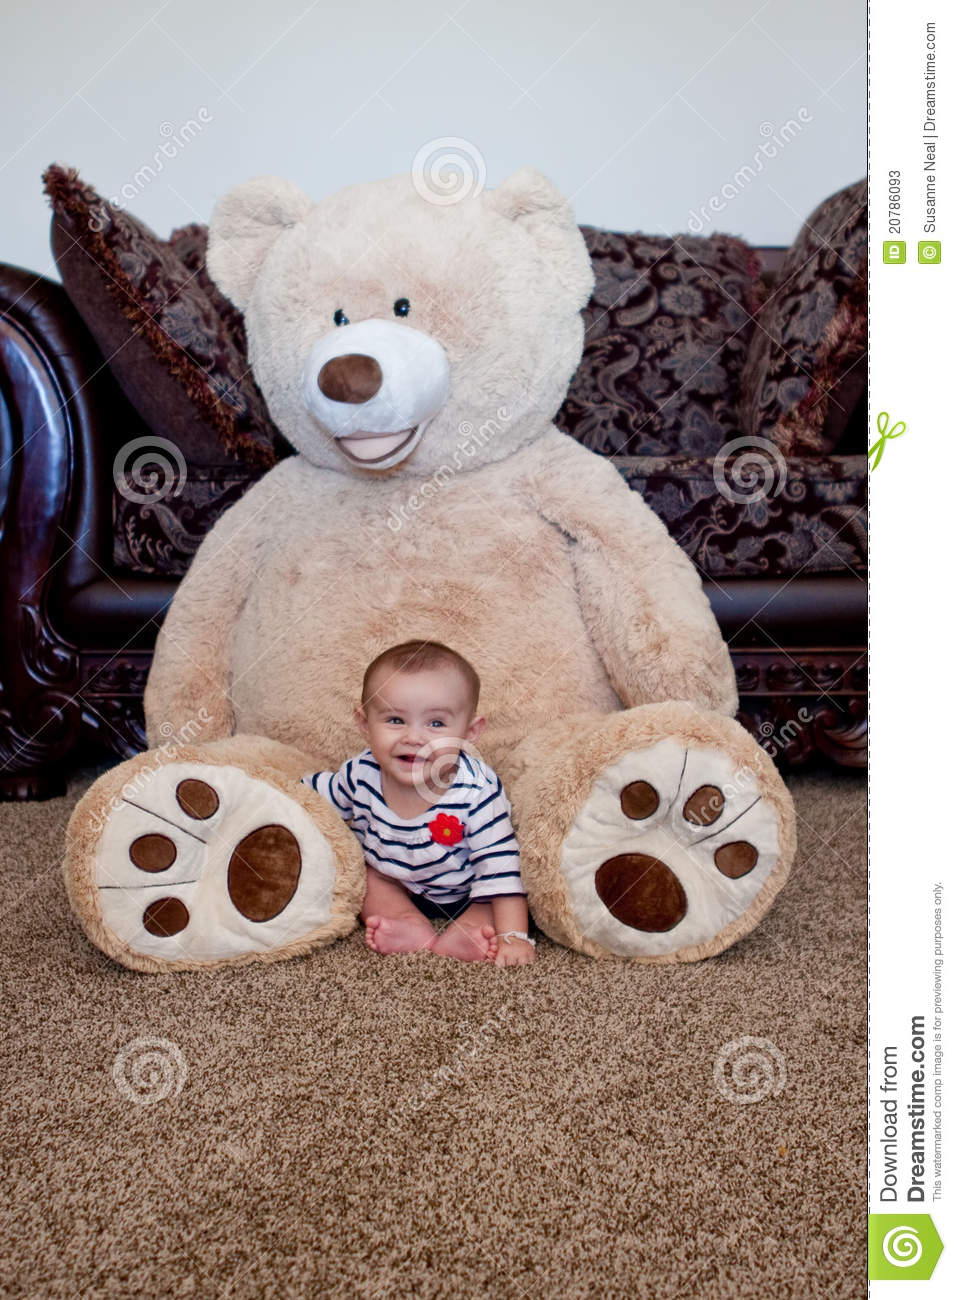 Baby Sitting In Front Of Giant Teddy Bear Stock Image